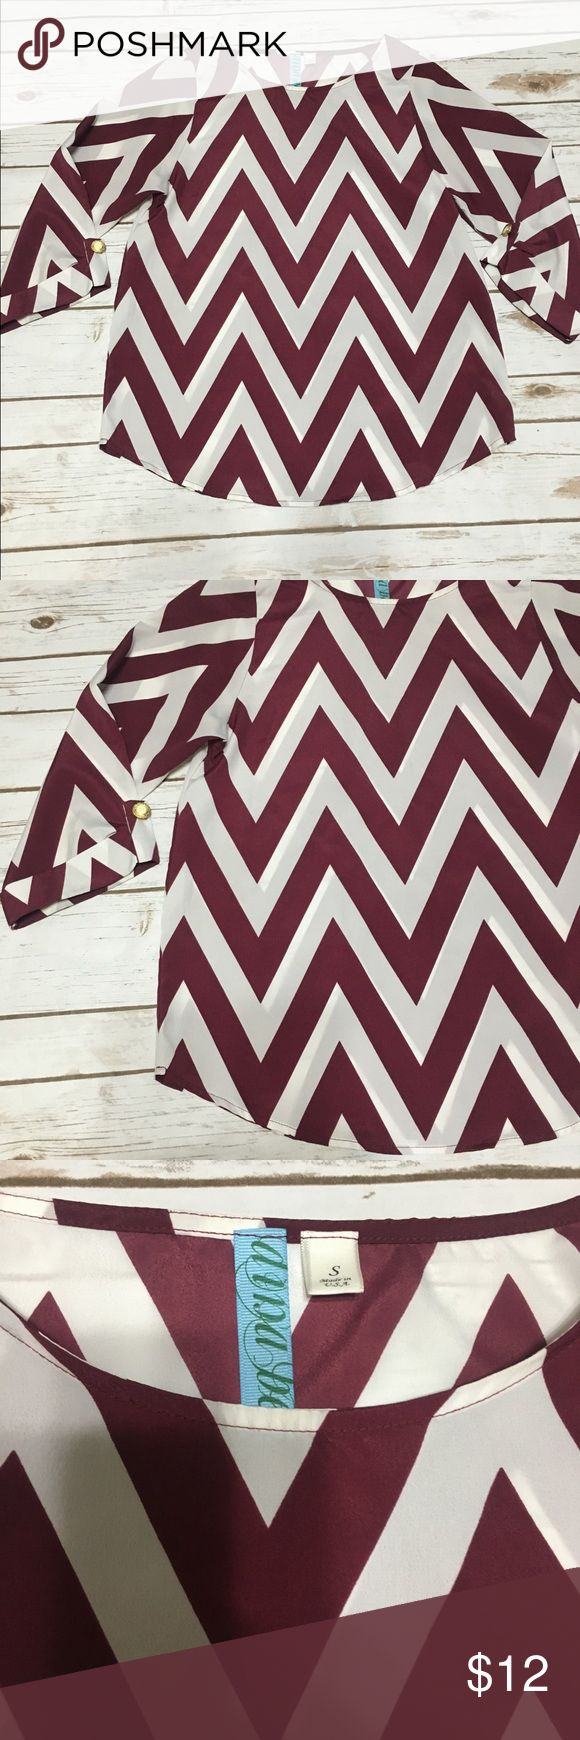 Dina Be White and Maroon Chevron Blouse Dina Be Chevron blouse with rolled sleeves. Cute gold accent buttons. It is somewhat sheer.  Has a small stain that can be seen in the close up but it is hardly noticeable. Otherwise no tears, snags or piling. dina be Tops Blouses